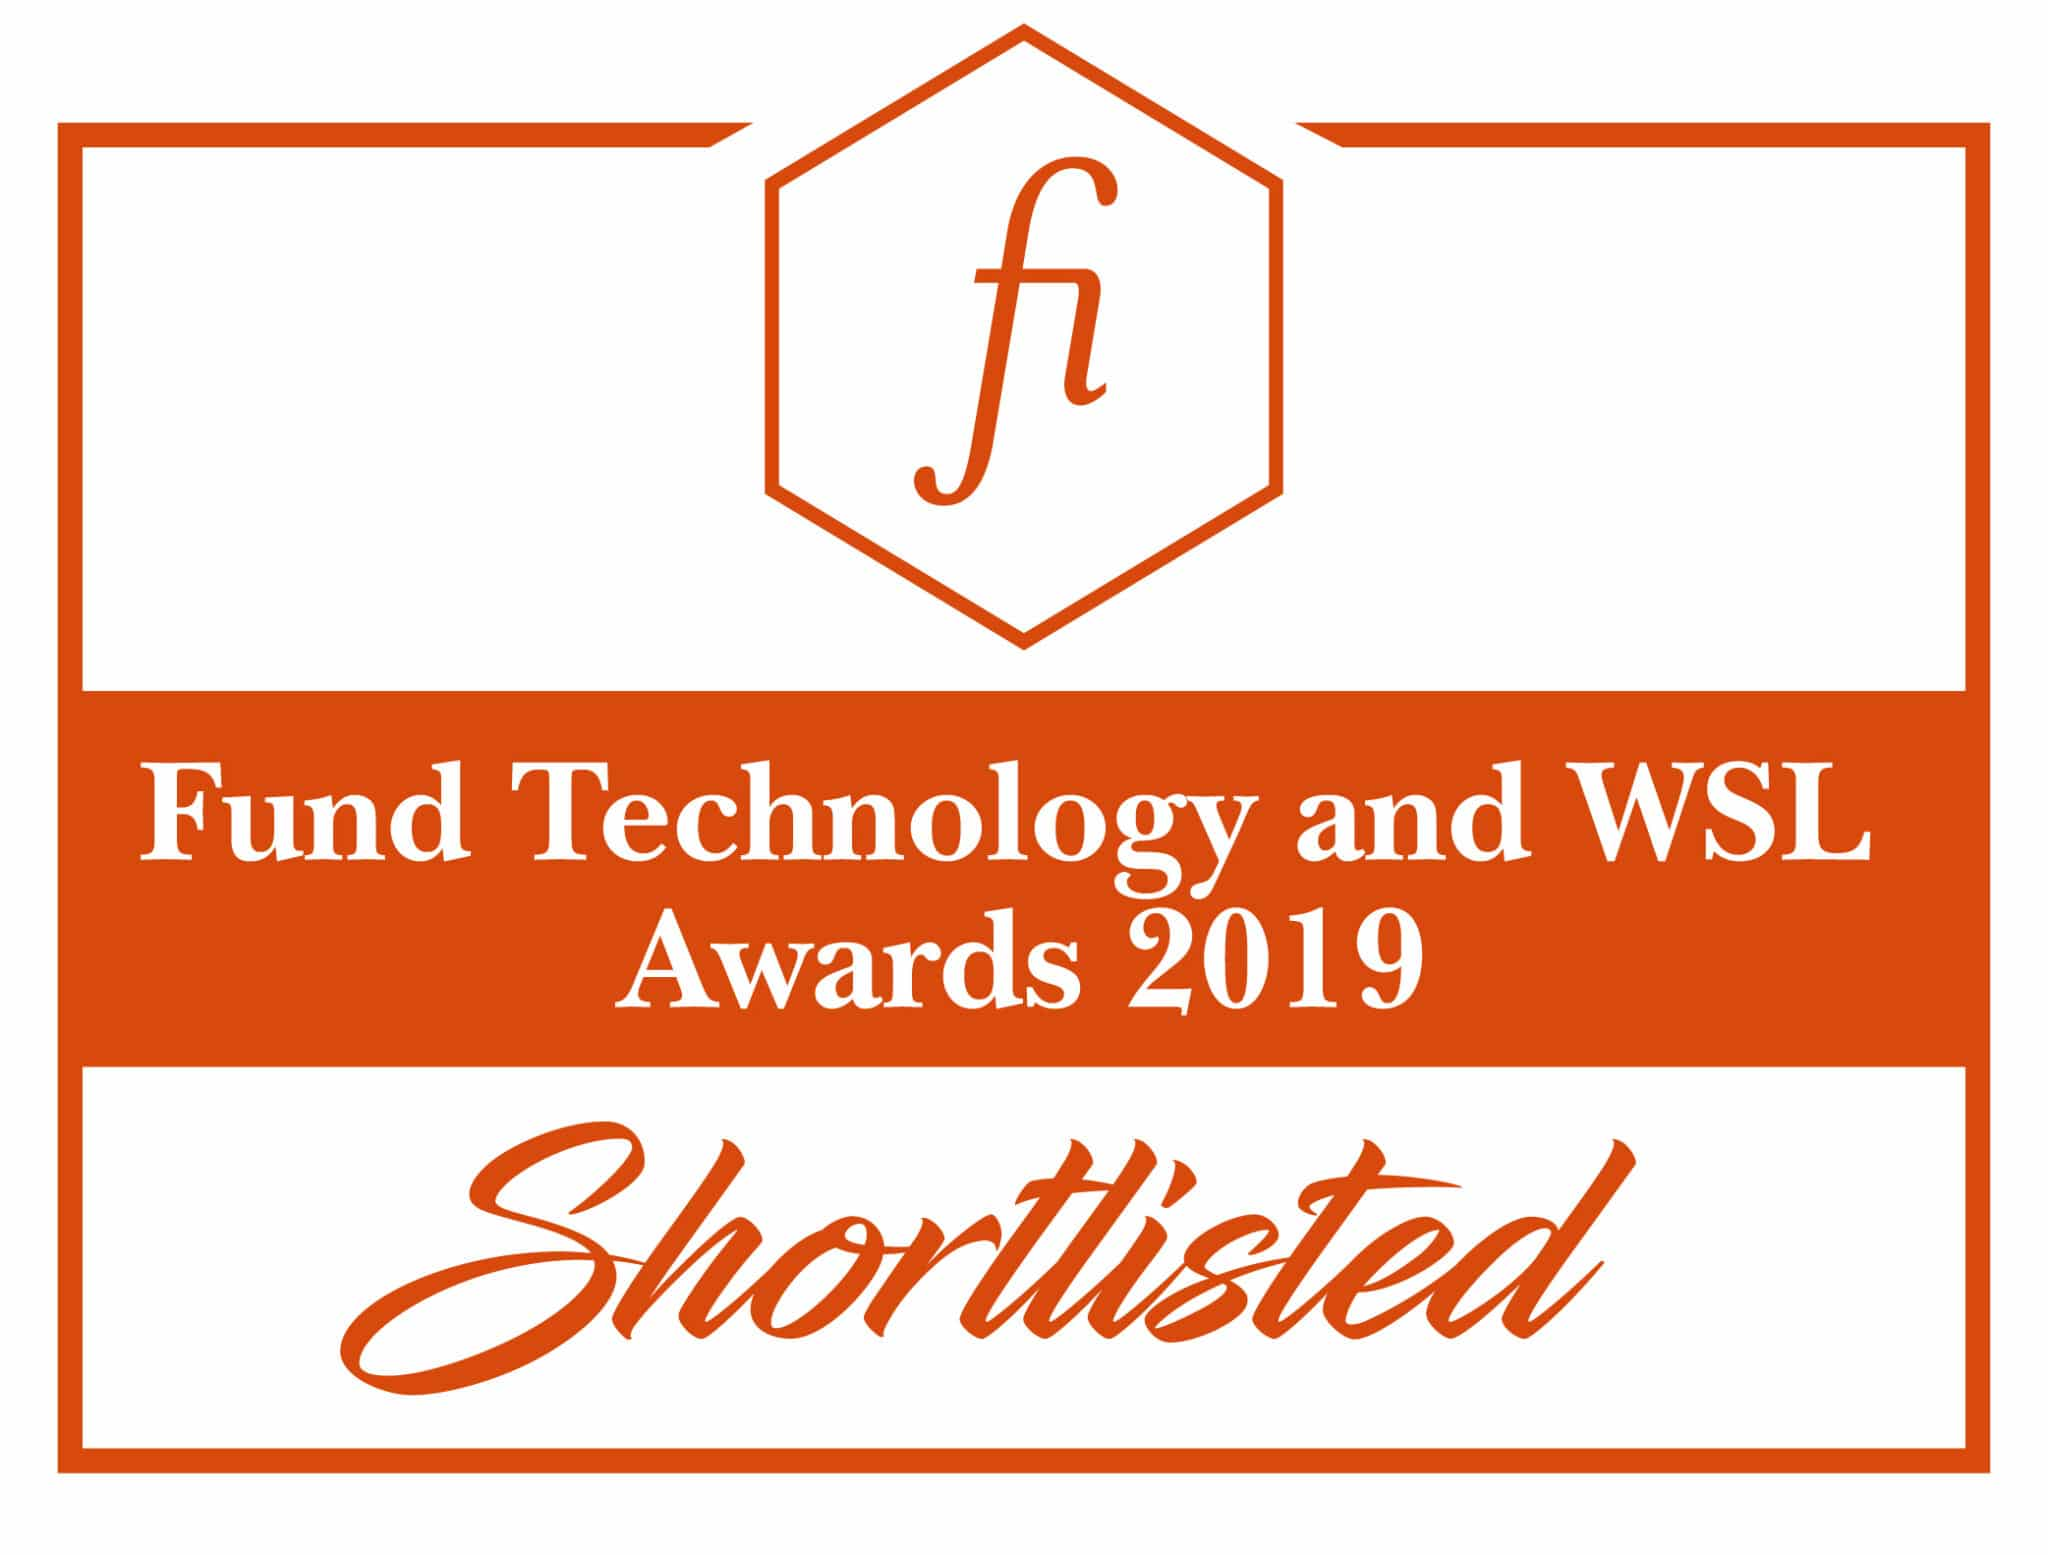 Fund Technology and WSL Awards 2019 - Shortlisted Logo